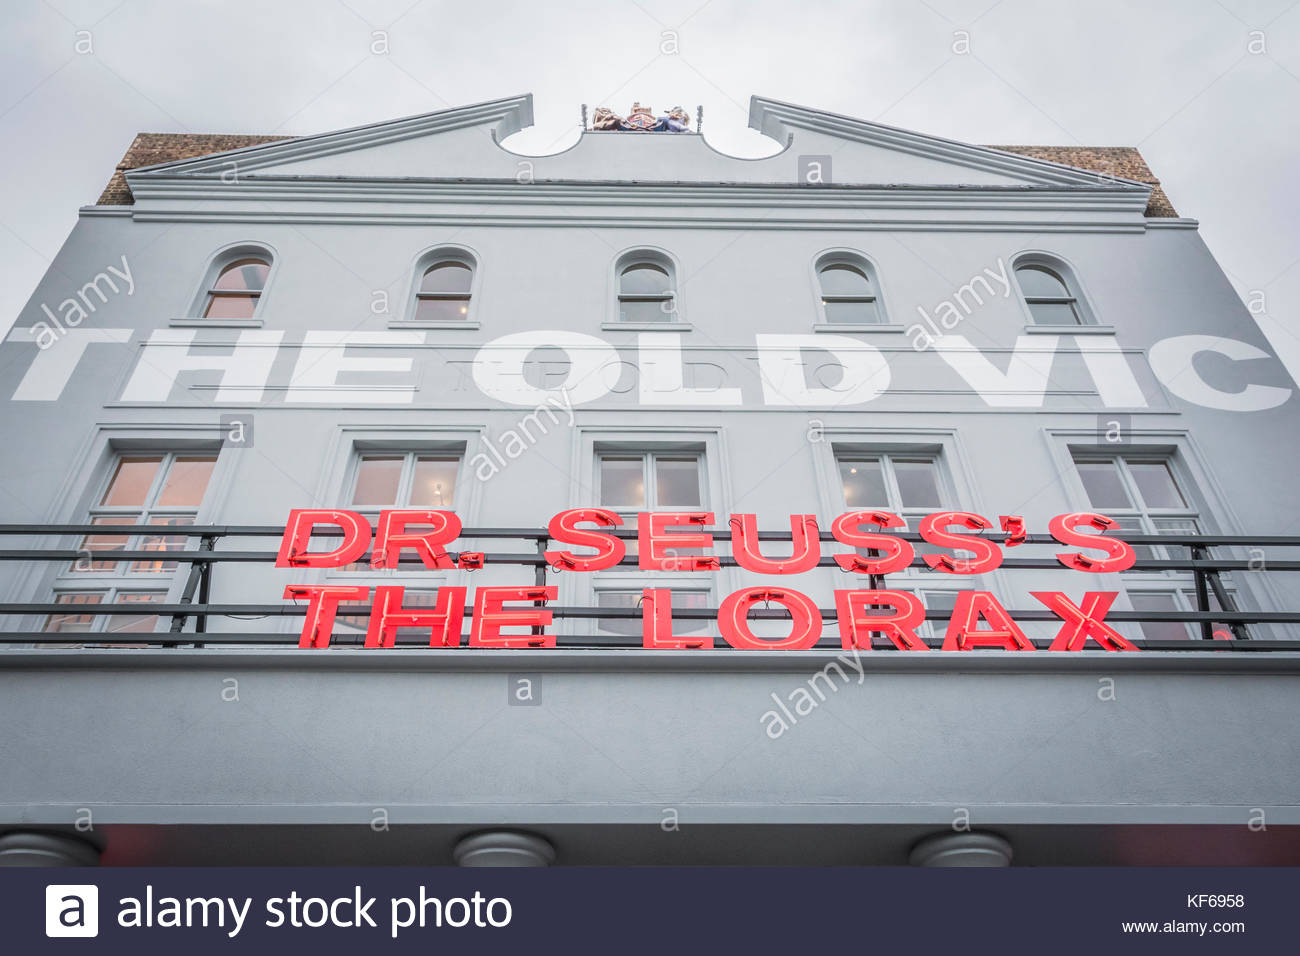 London, England, UK. 24 October, 2017.  The Opening Night of Dr Seuss's The Lorax at the Old Vic Theatre on - Stock Image